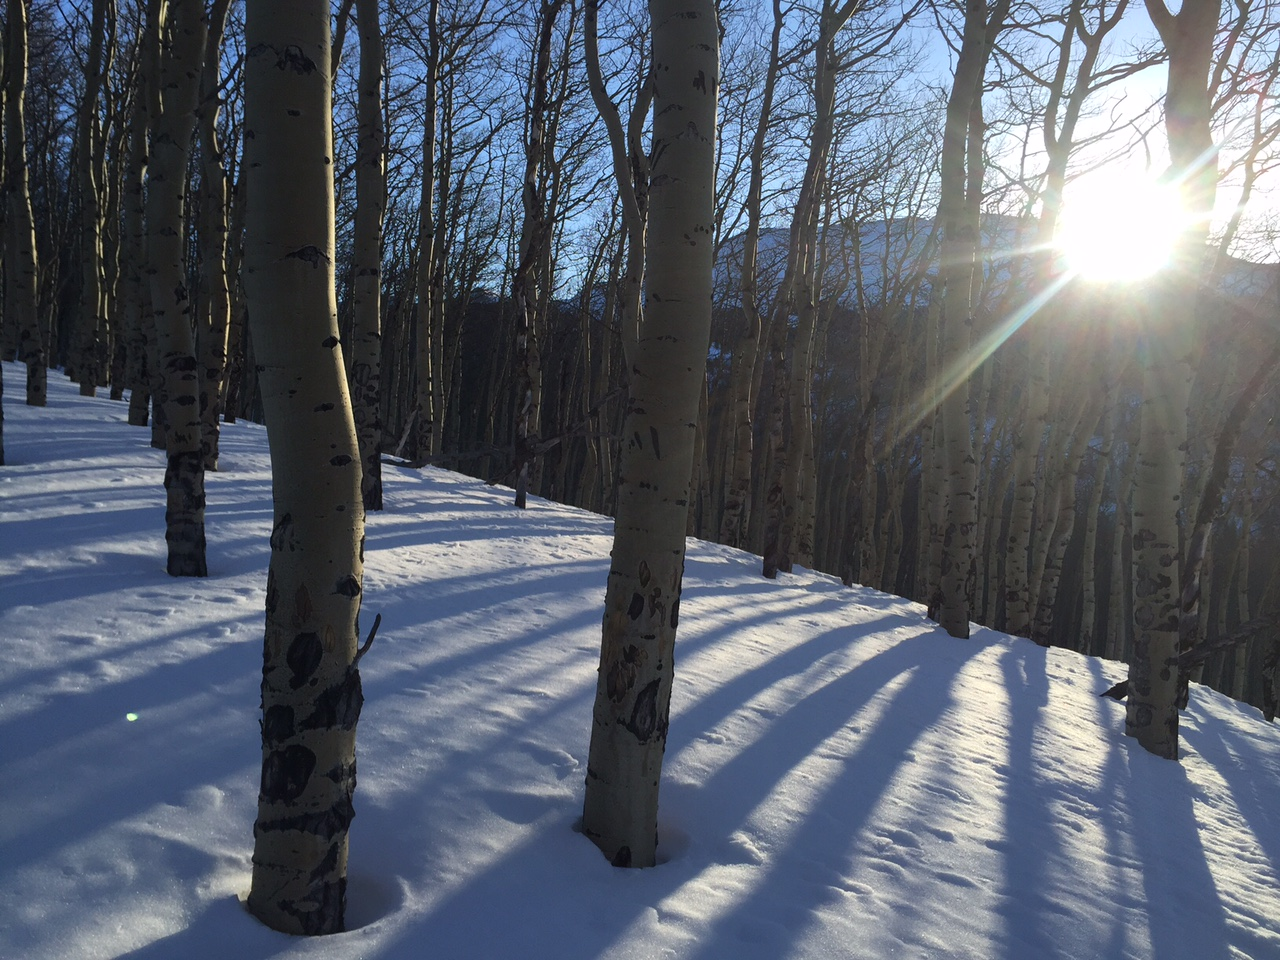 Skinning through Aspens at sunrise.